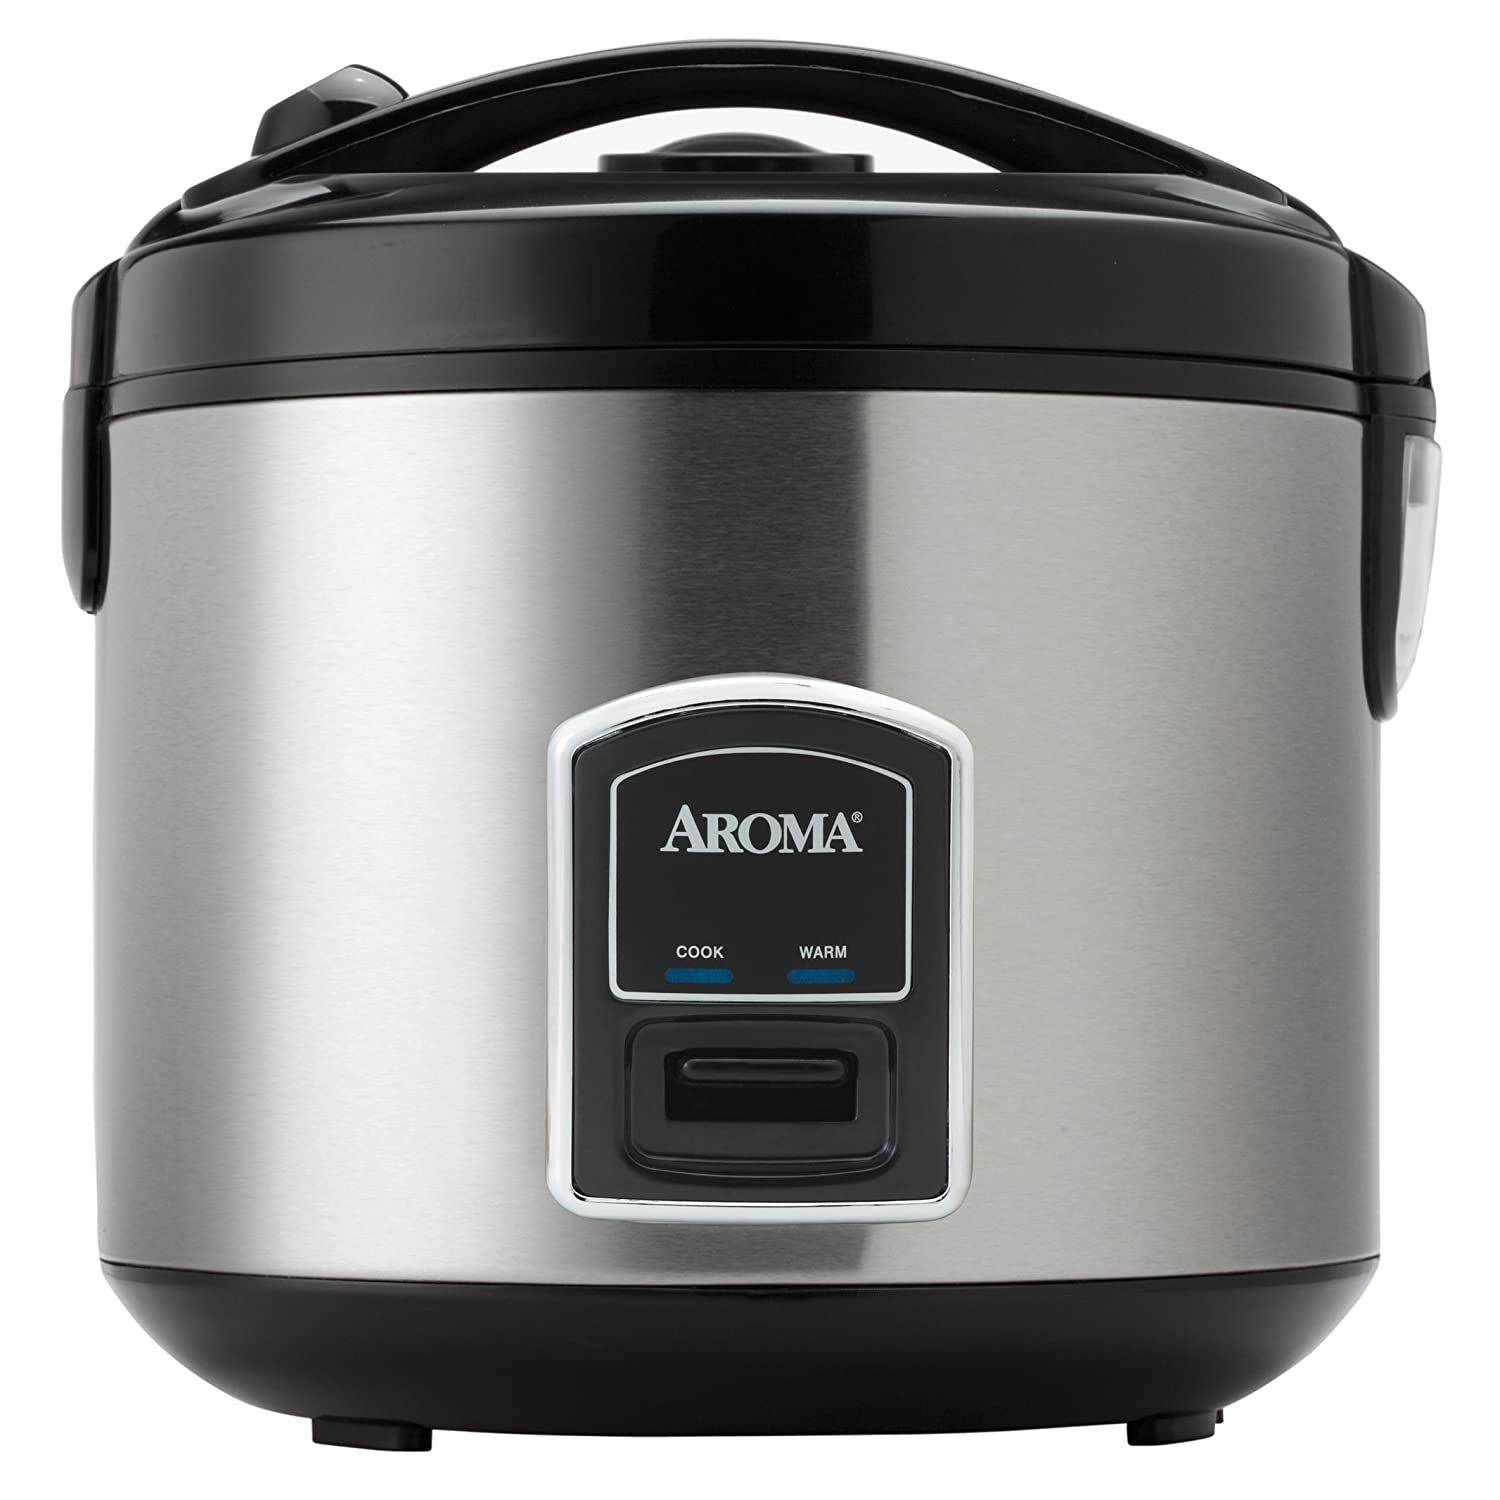 Aroma Housewares 20-Cup (Cooked)(10-Cup UNCOOKED) Cool Touch Rice Cooker and Food Steamer, Stainless Steel Exterior (ARC-900SB)